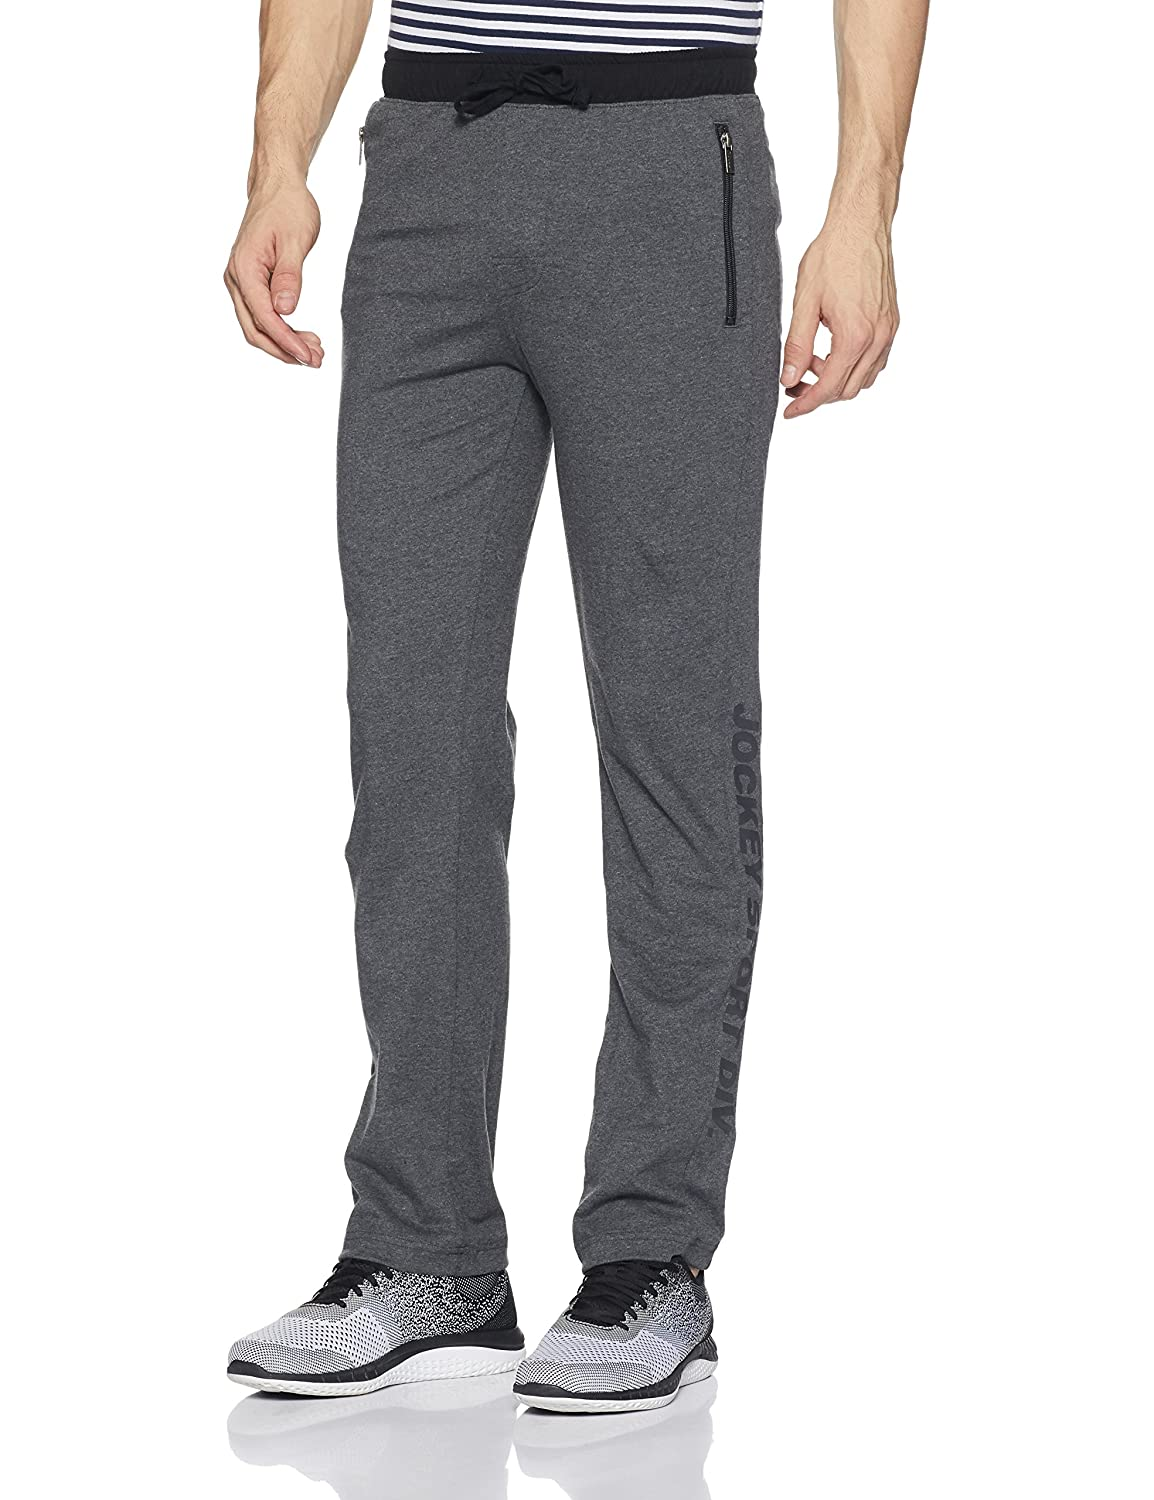 035b0f0ebf39 Track Pants  Buy Night Pants online at best prices in India - Amazon.in